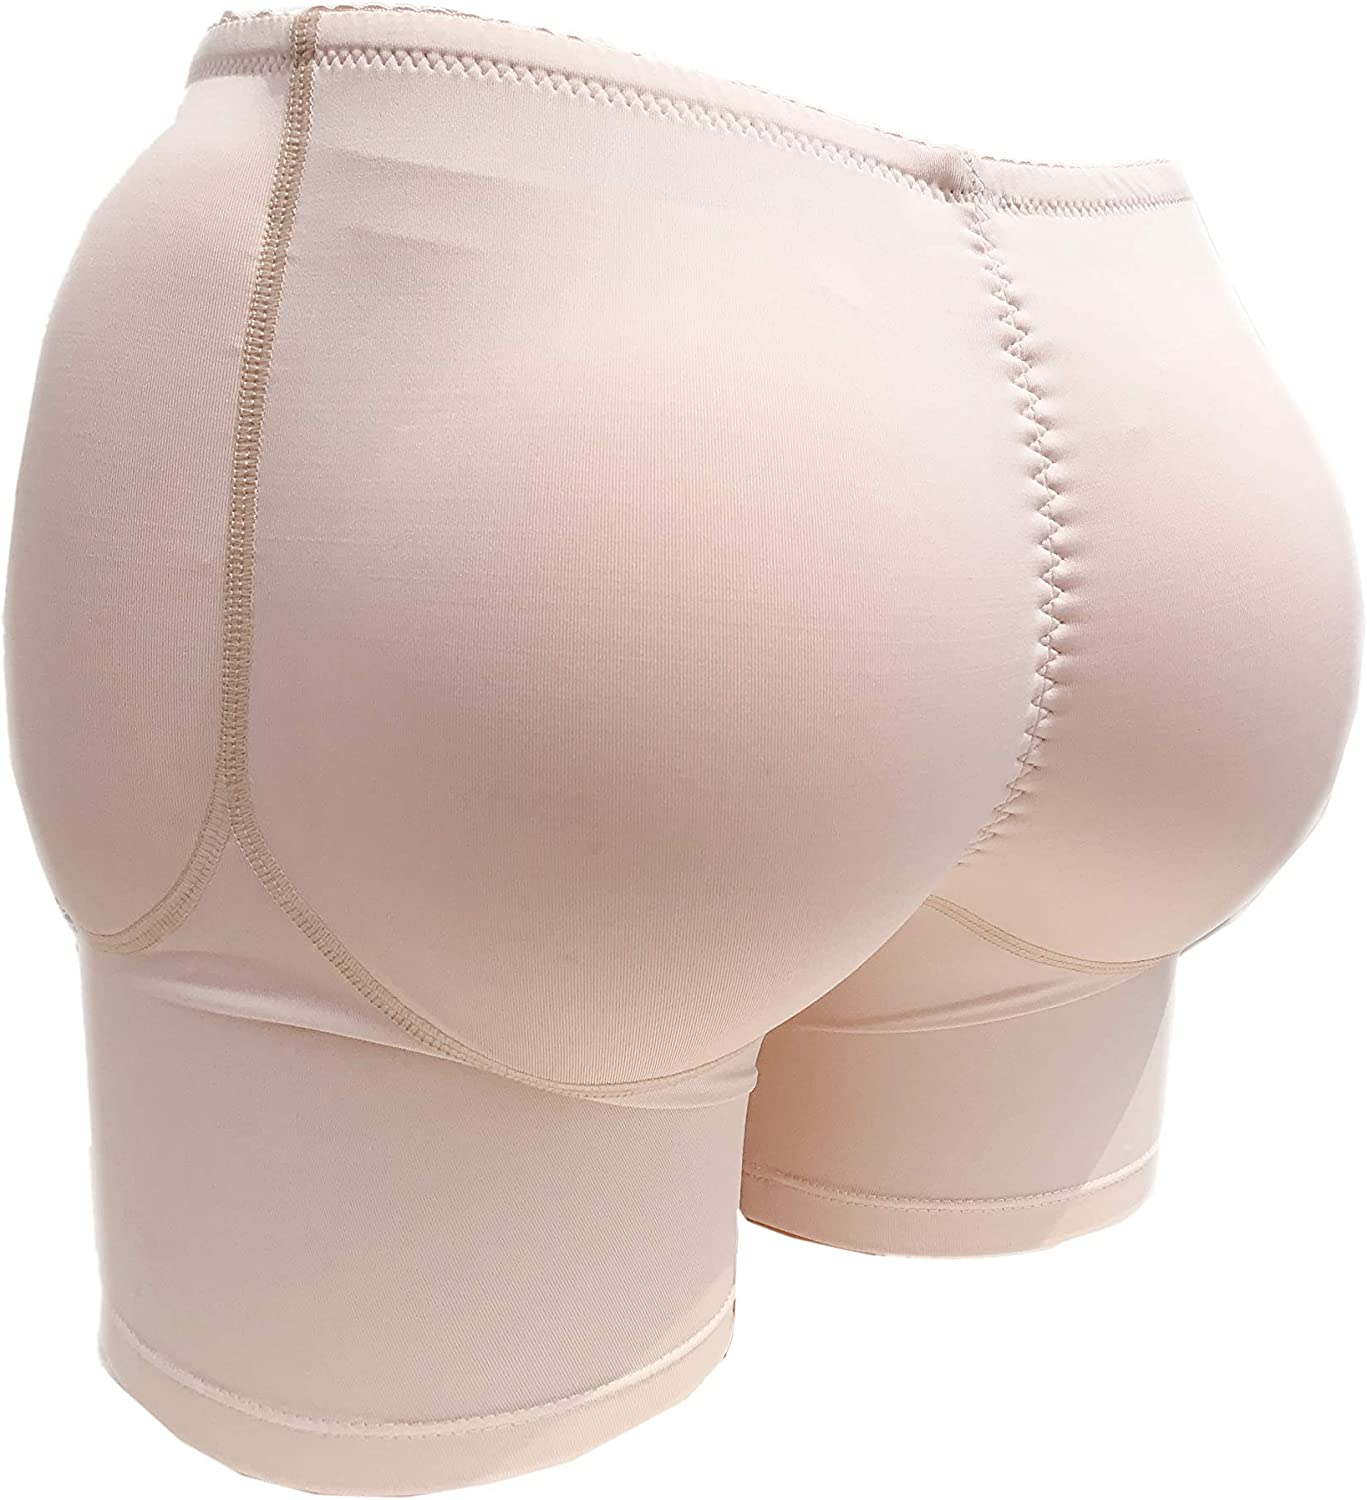 4PCS Women Butt Silicone Max 72% OFF Padded Underwear Hip Panties Enhancer New York Mall S